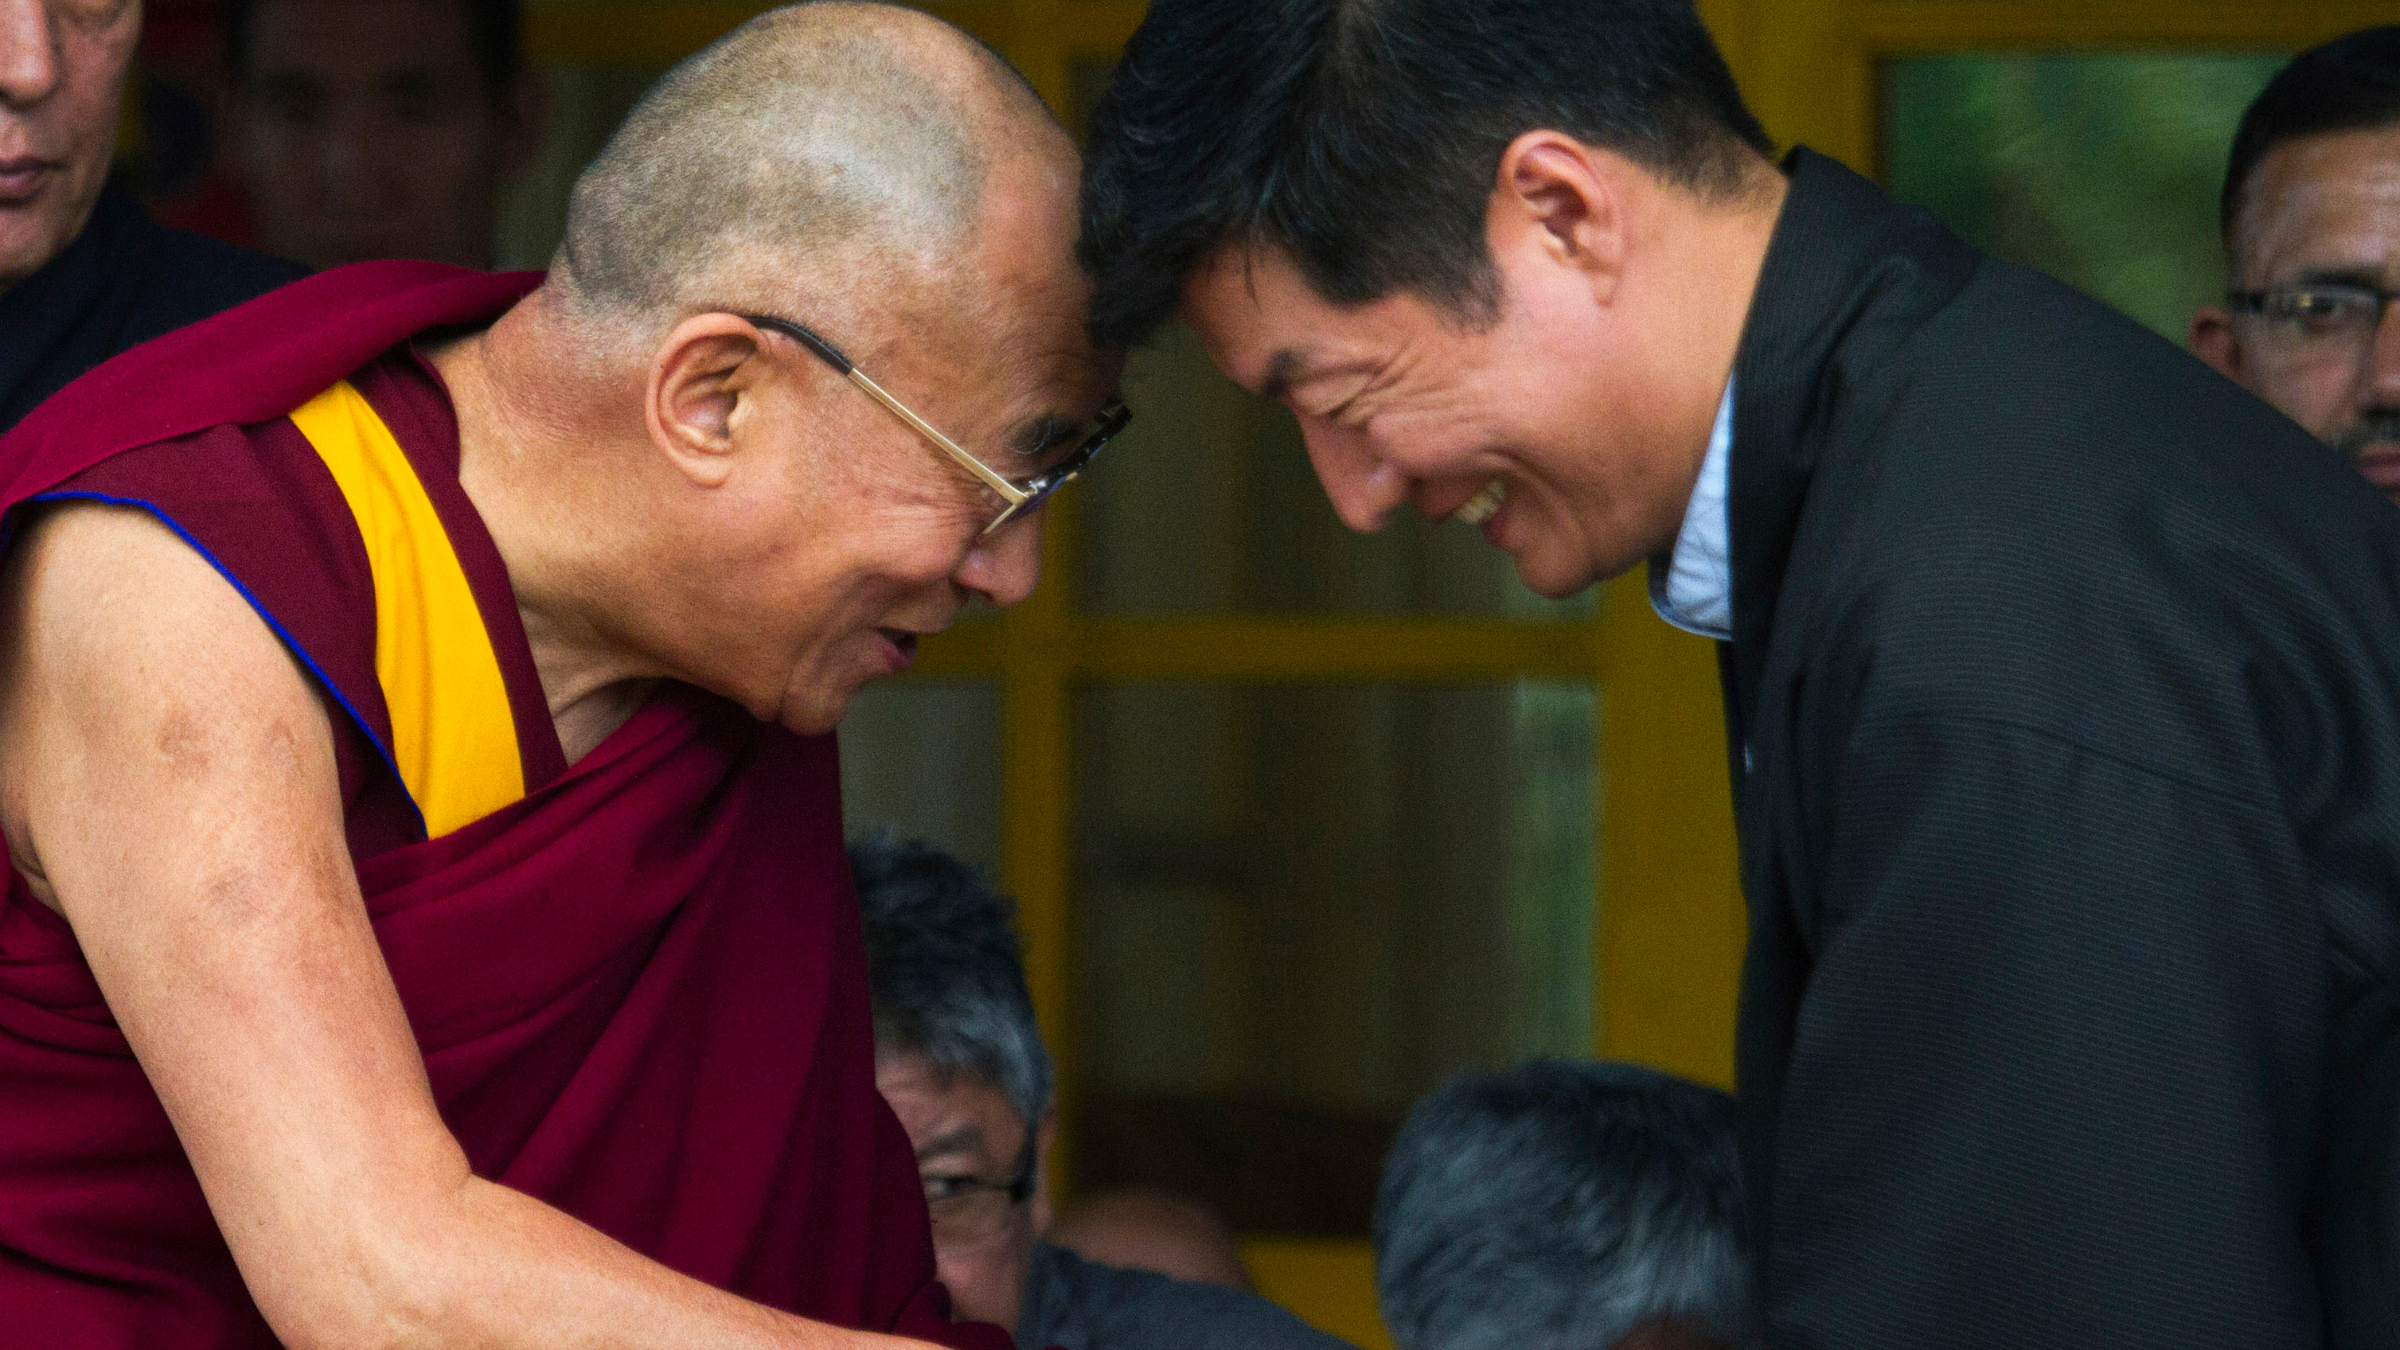 Tibetan spiritual leader the Dalai Lama, greets Lobsang Sangay, the prime minister of the Tibetan government-in-exile.